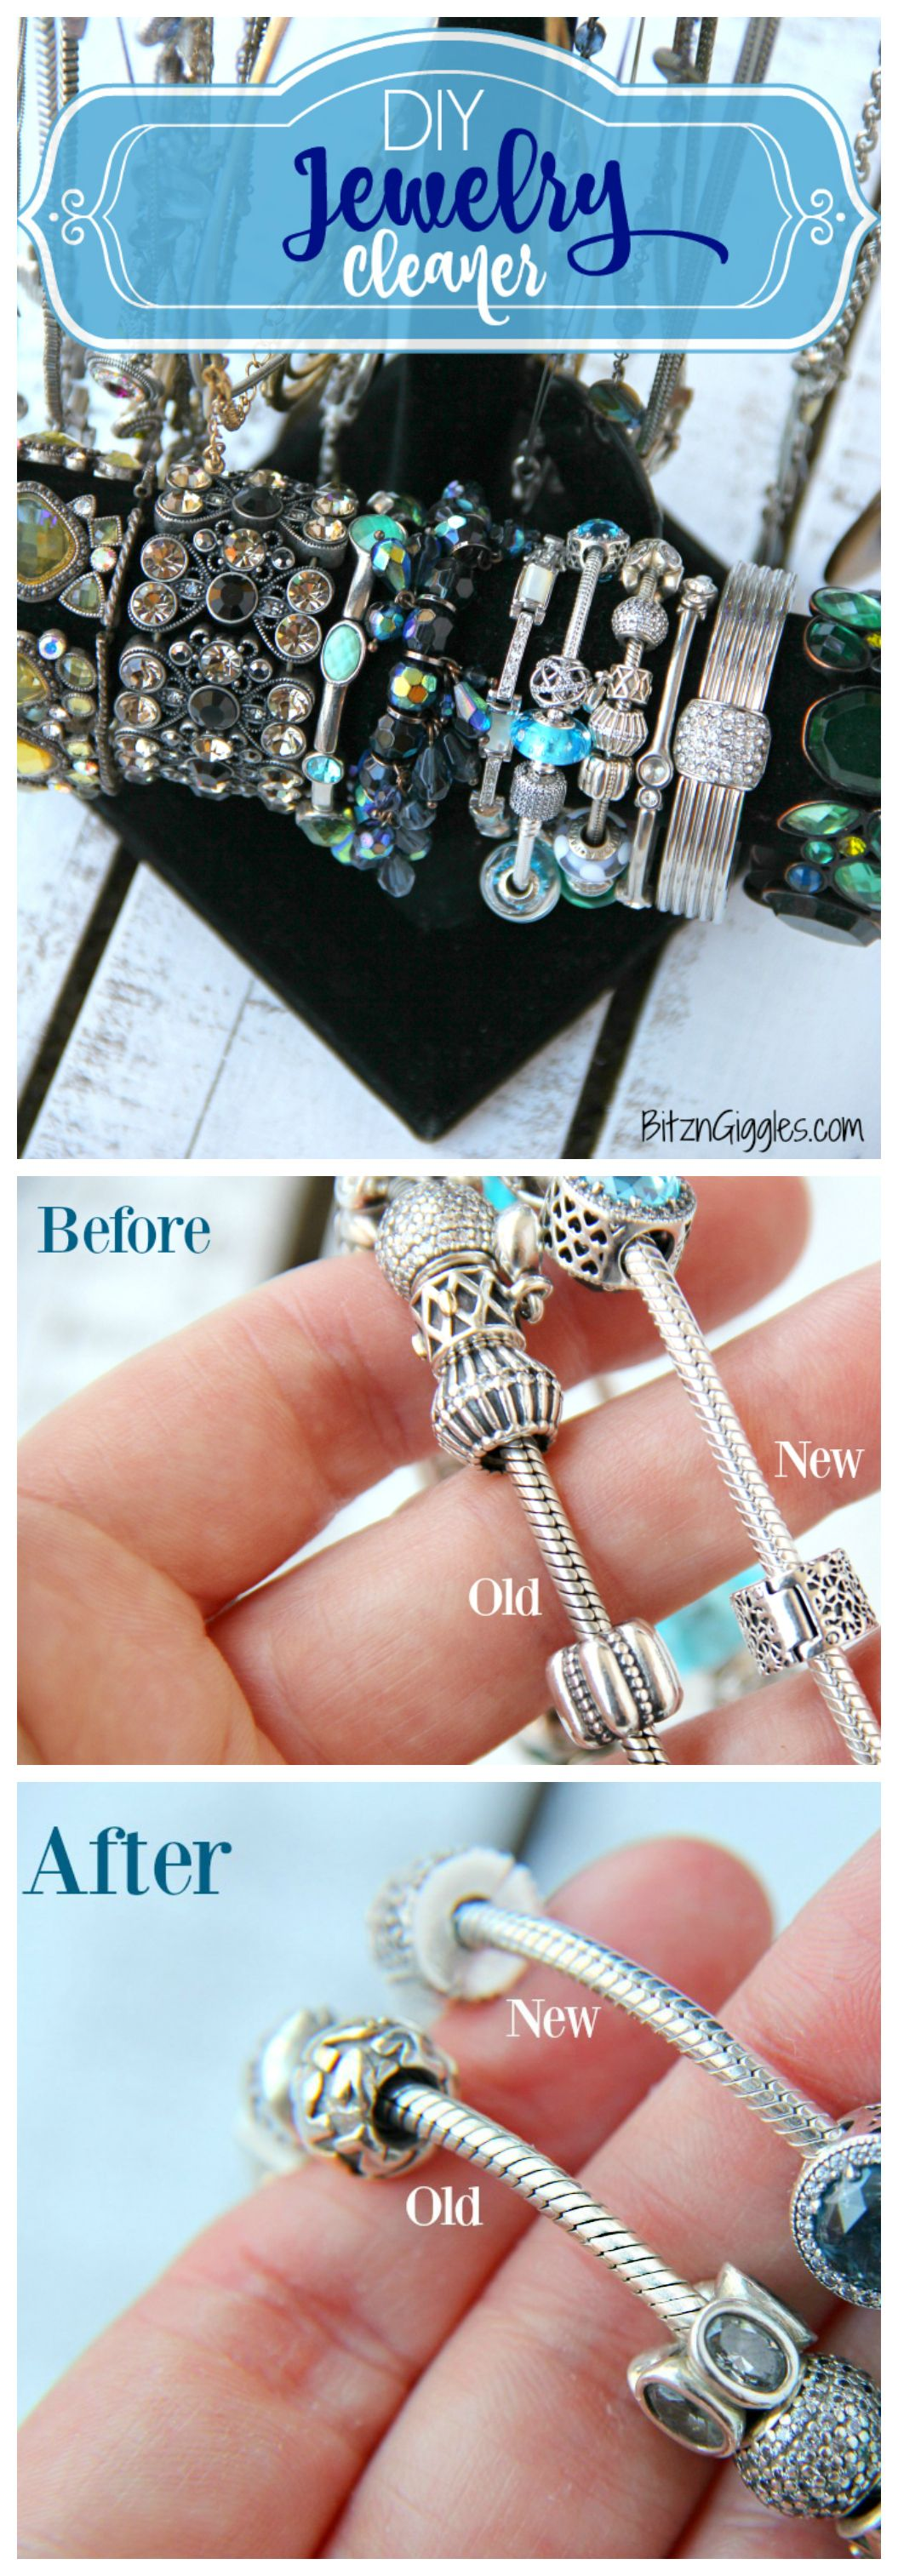 Diy Jewelry Cleaner  Homemade Jewelry Cleaner, Cleaning Silver Jewelry, Homemade Jewelry